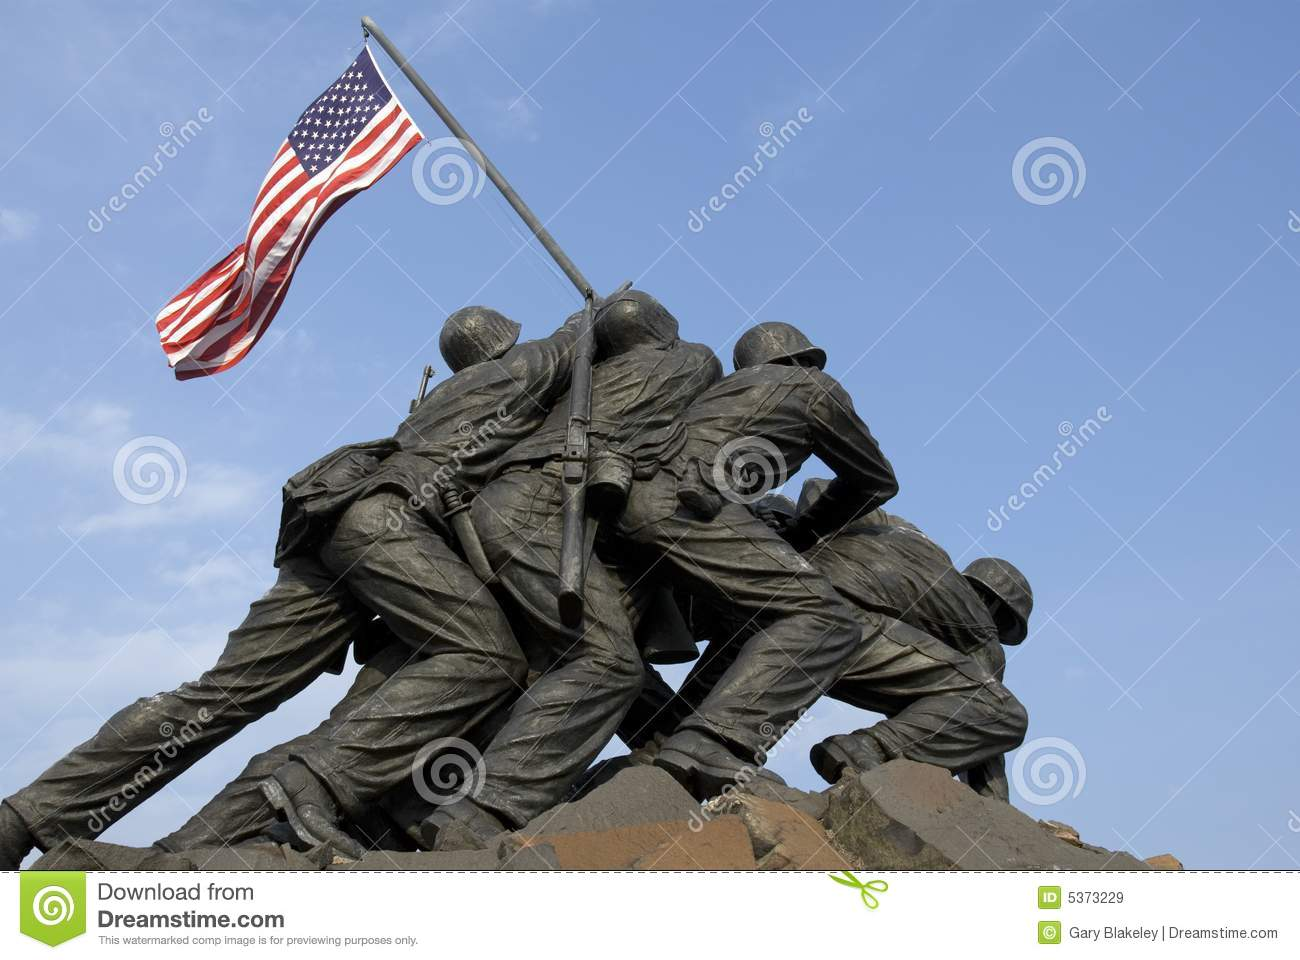 ... United States Marine Corps (USMC) who have died defending their